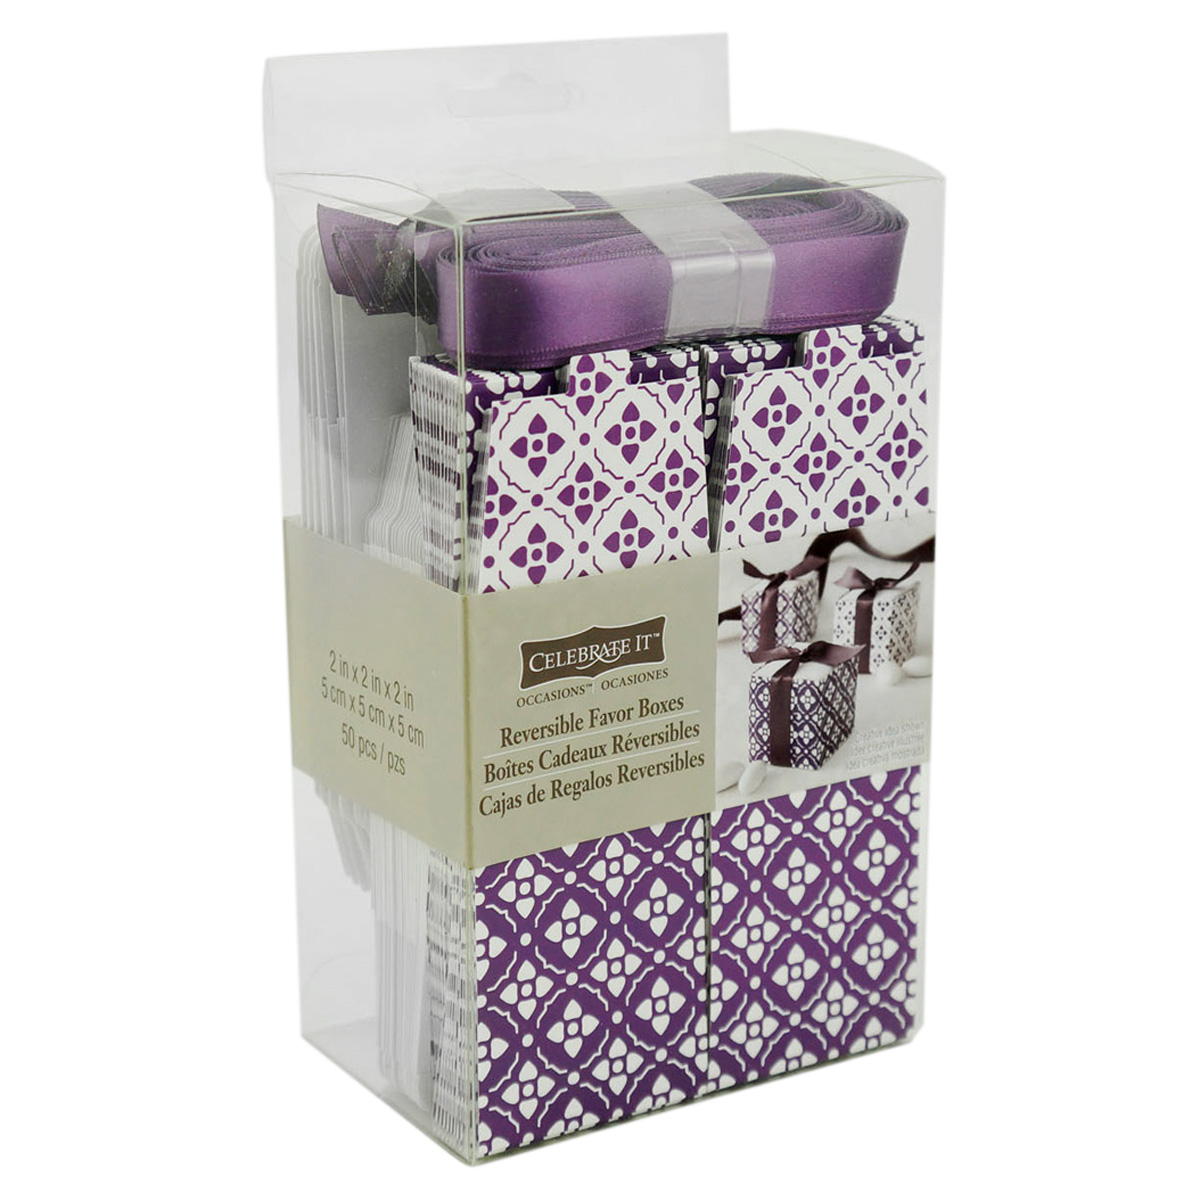 Michaels Brown Favor Boxes : Celebrate it occasions reversible favor boxes